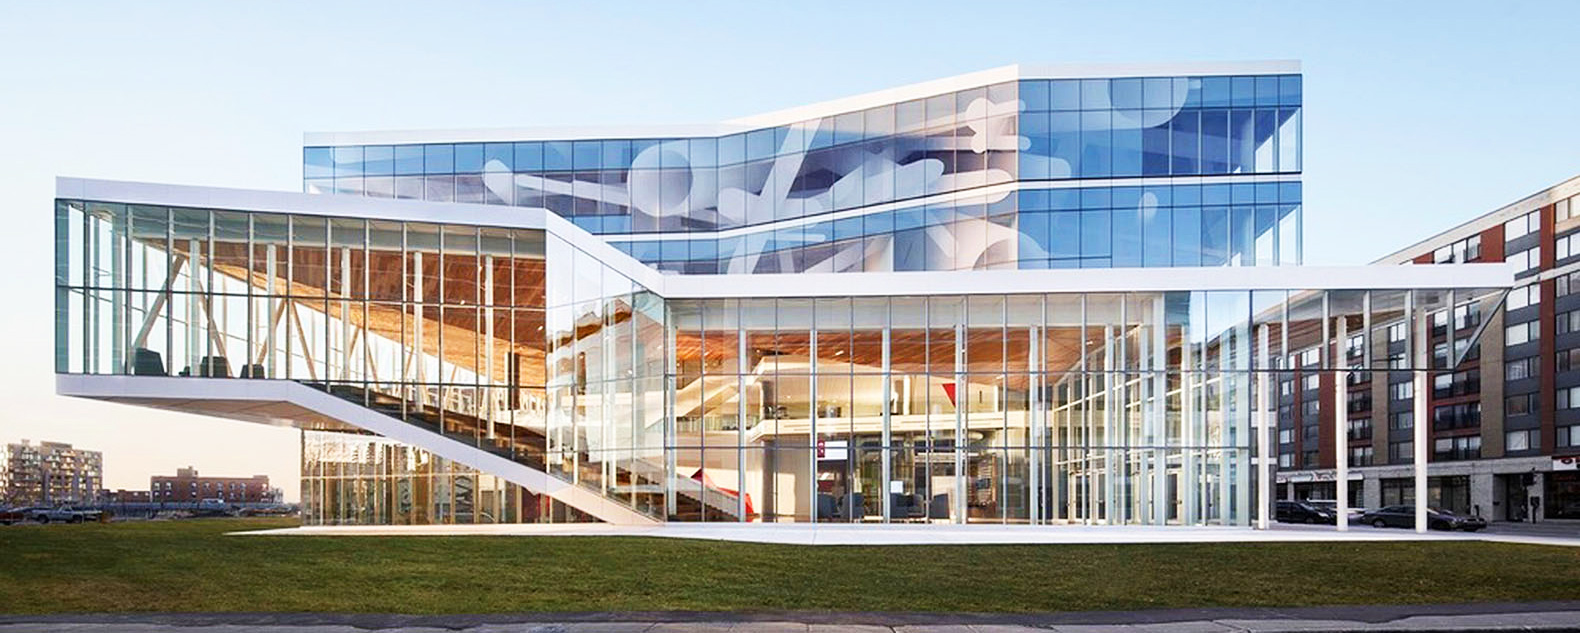 Leed silver certification inhabitat green design innovation montral school looks like its been carved out of a giant iceberg 1betcityfo Image collections